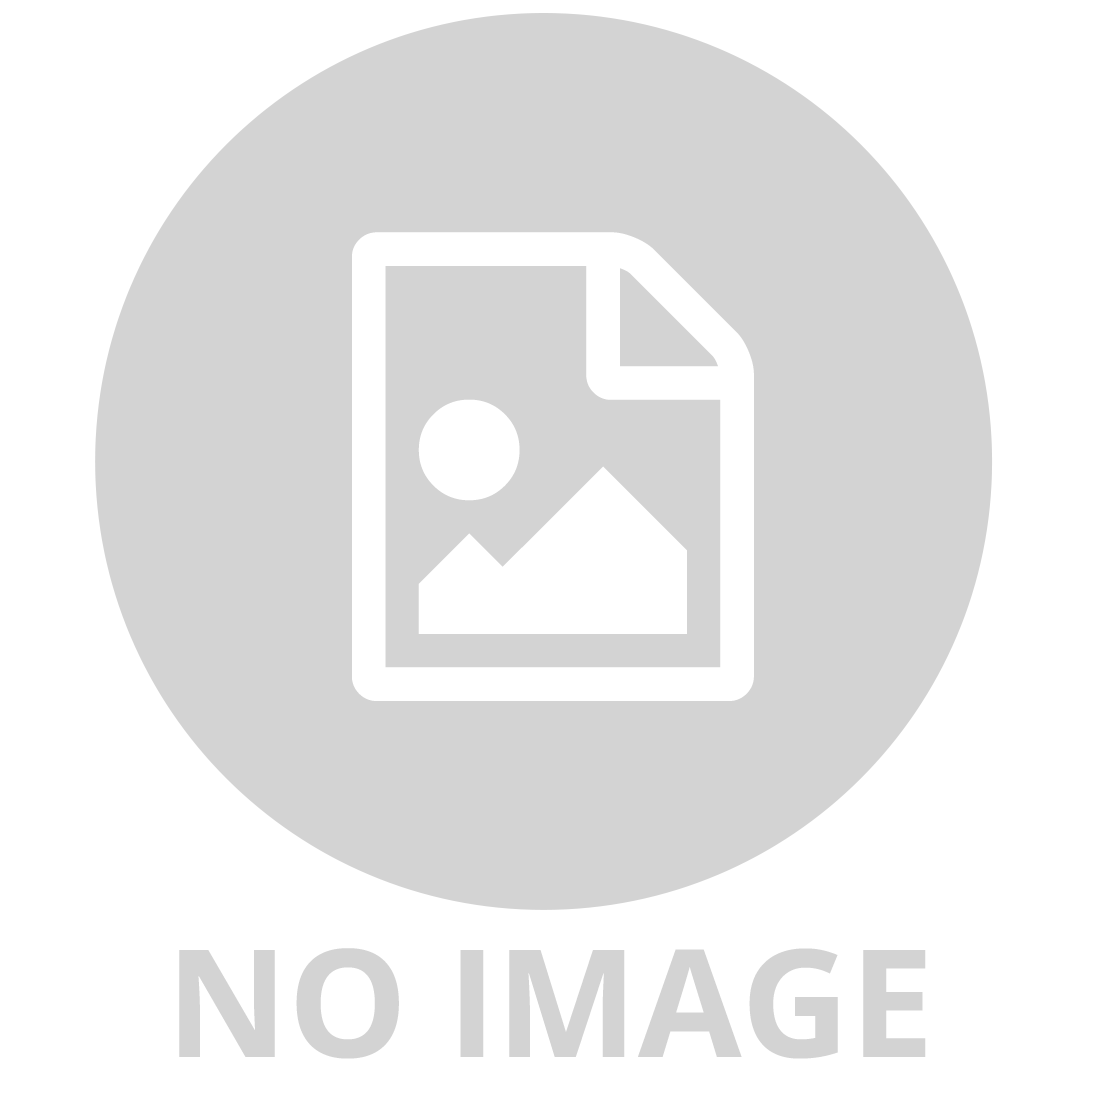 WAHU POOL PARTY AQUA HOCKEY